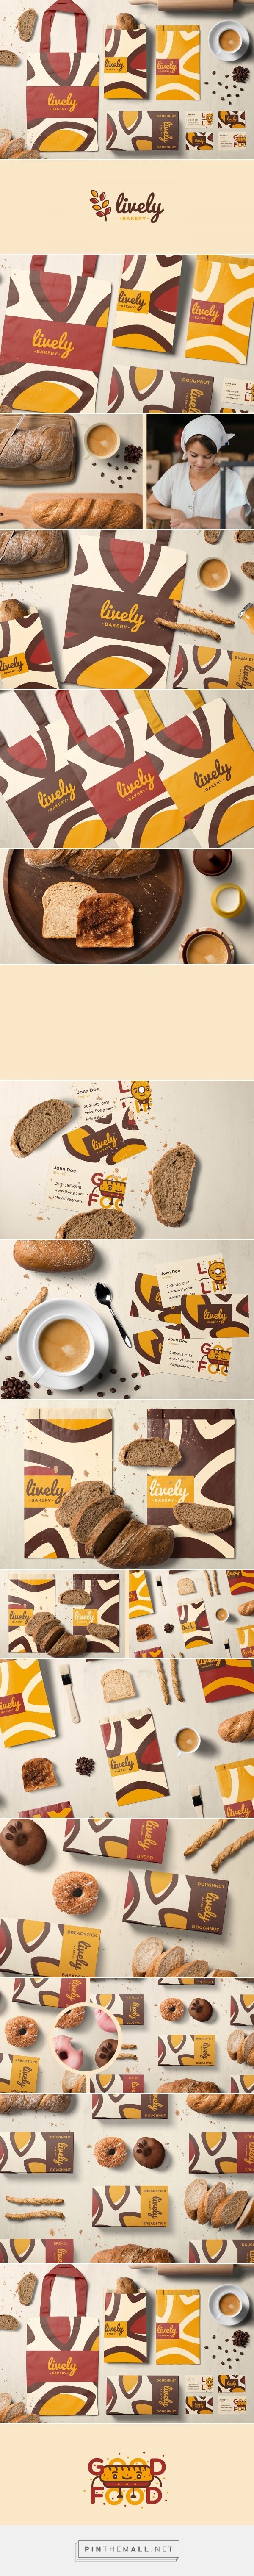 Lively Bakery and Cafe Branding by Rico John Jambaro | Fivestar Branding Agency – Design and Branding Agency & Curated Inspiration Gallery